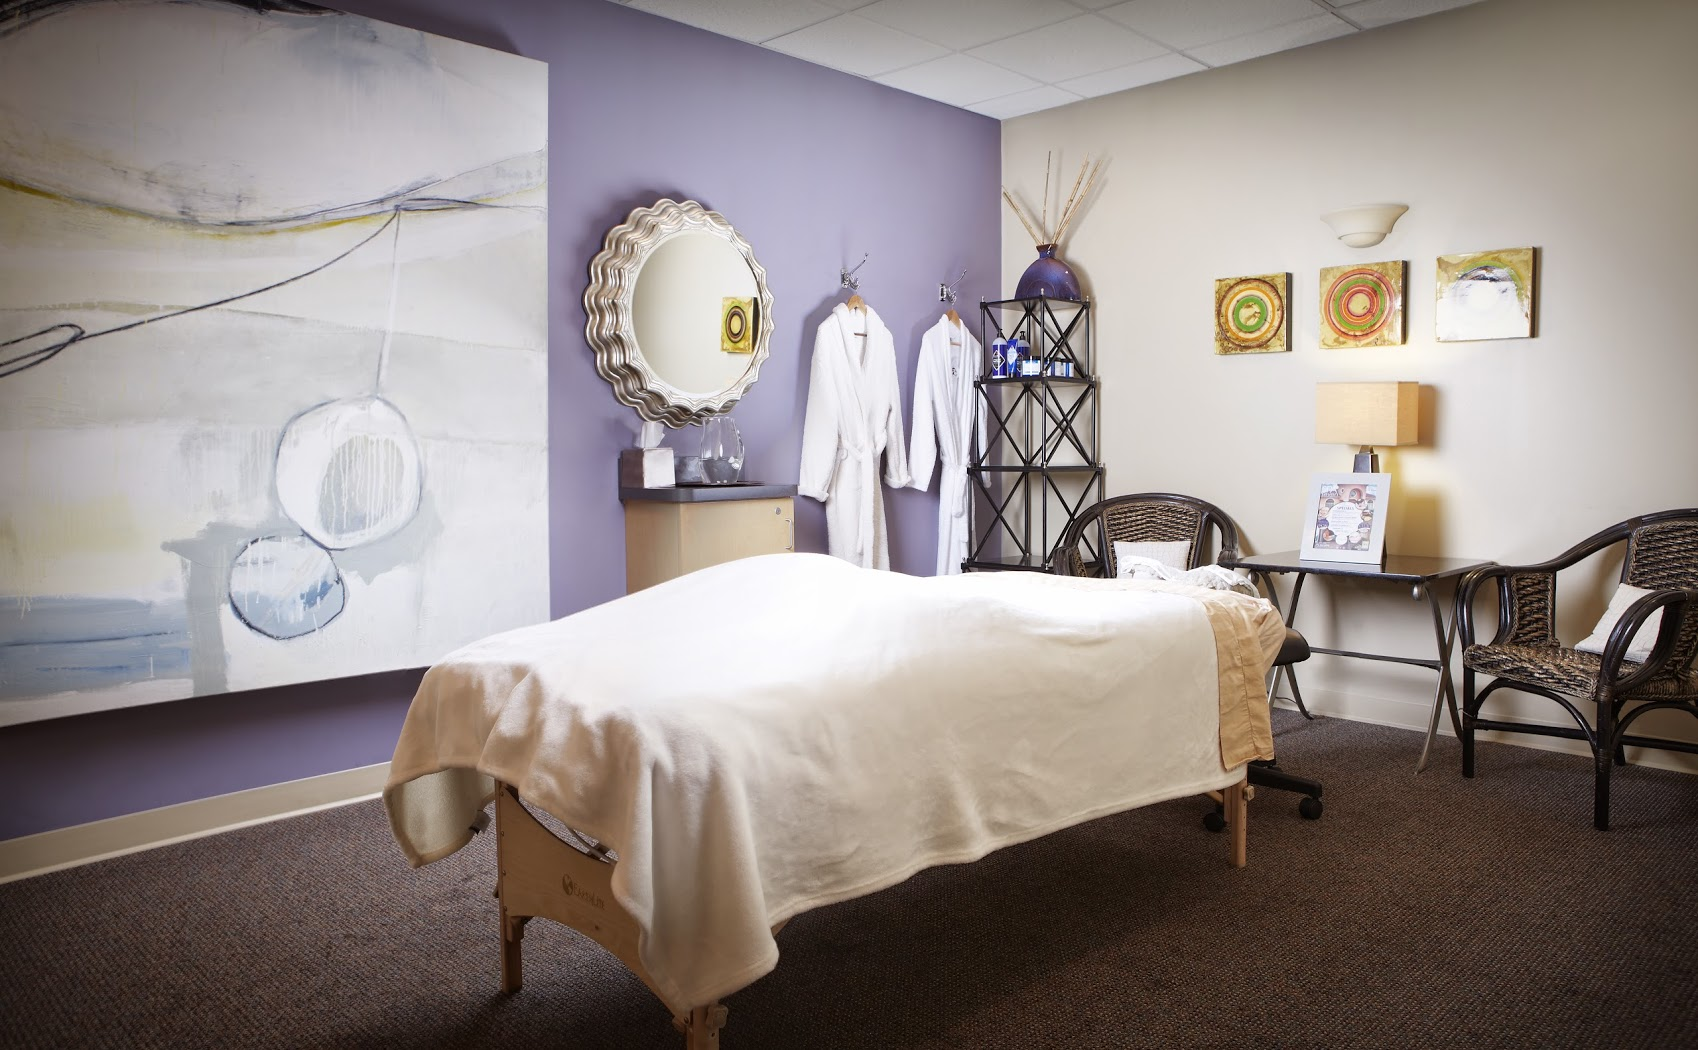 Medical Spa Seven fourth image